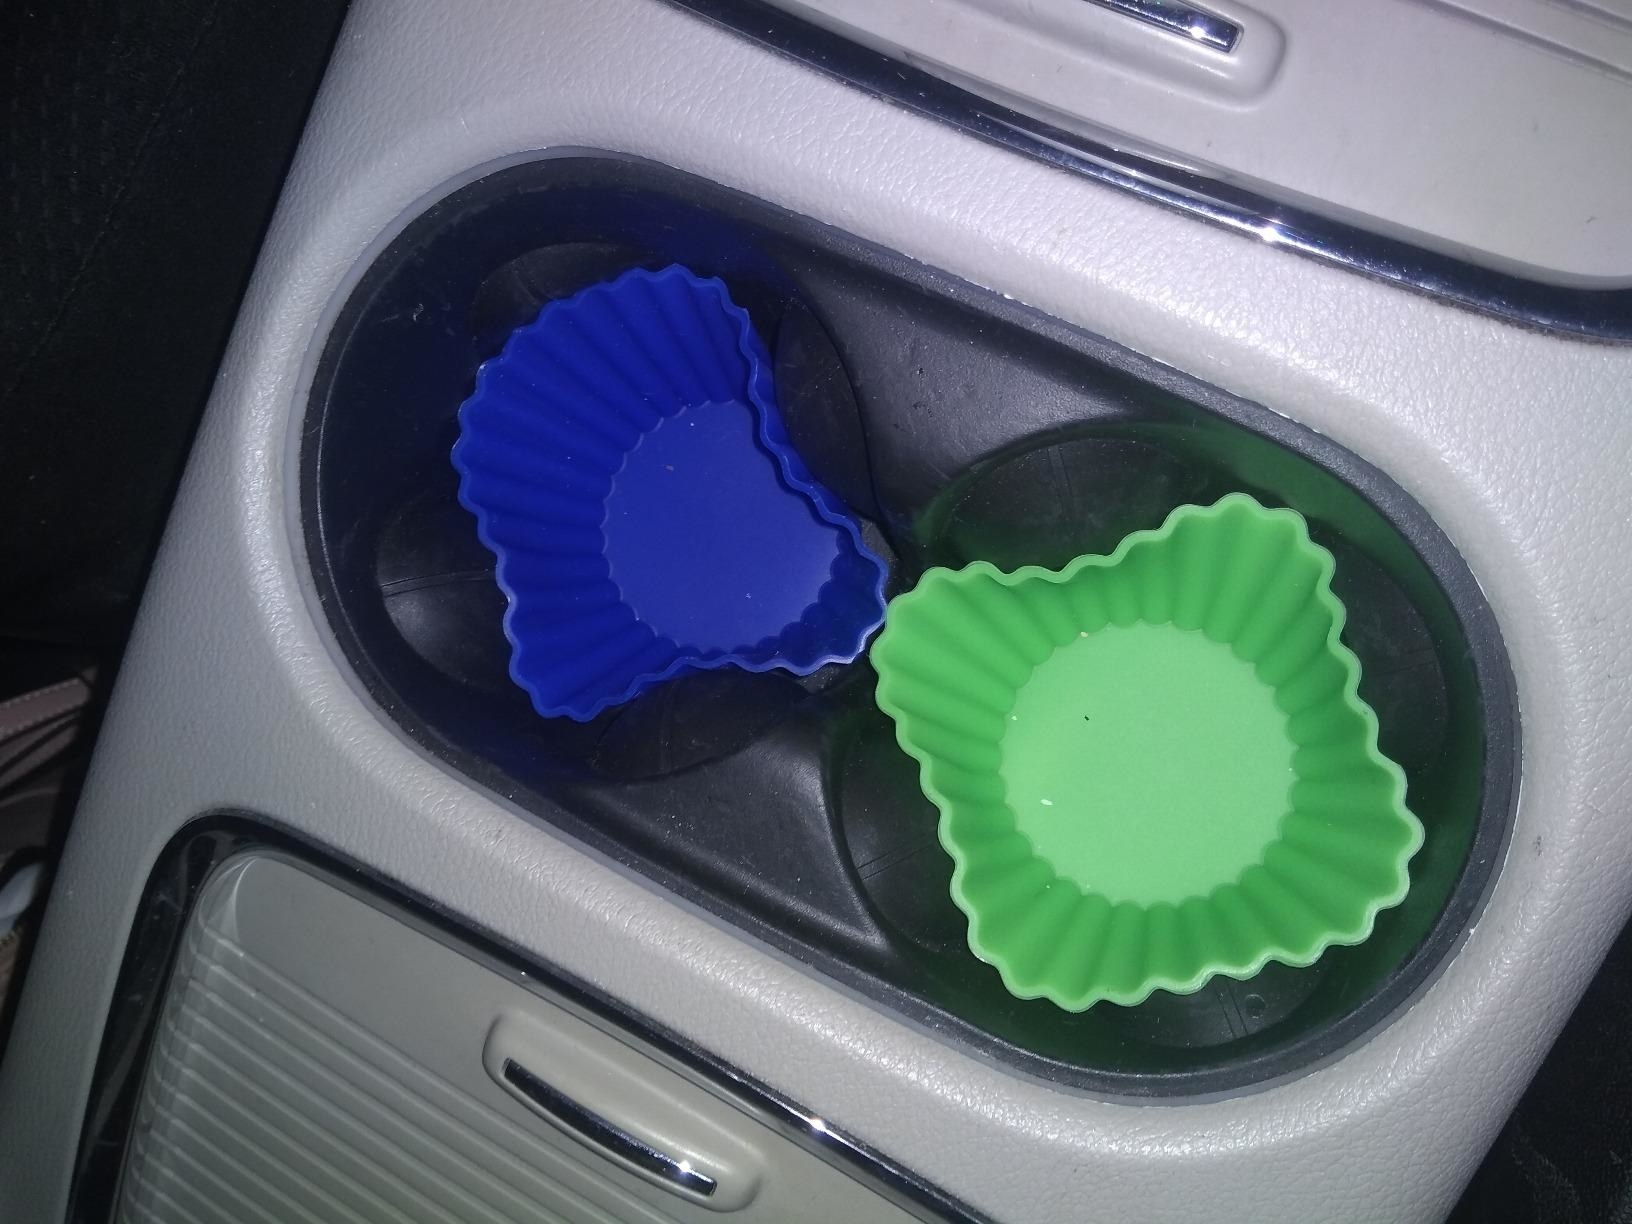 Reviewer photo of the baking cups in a cup holder